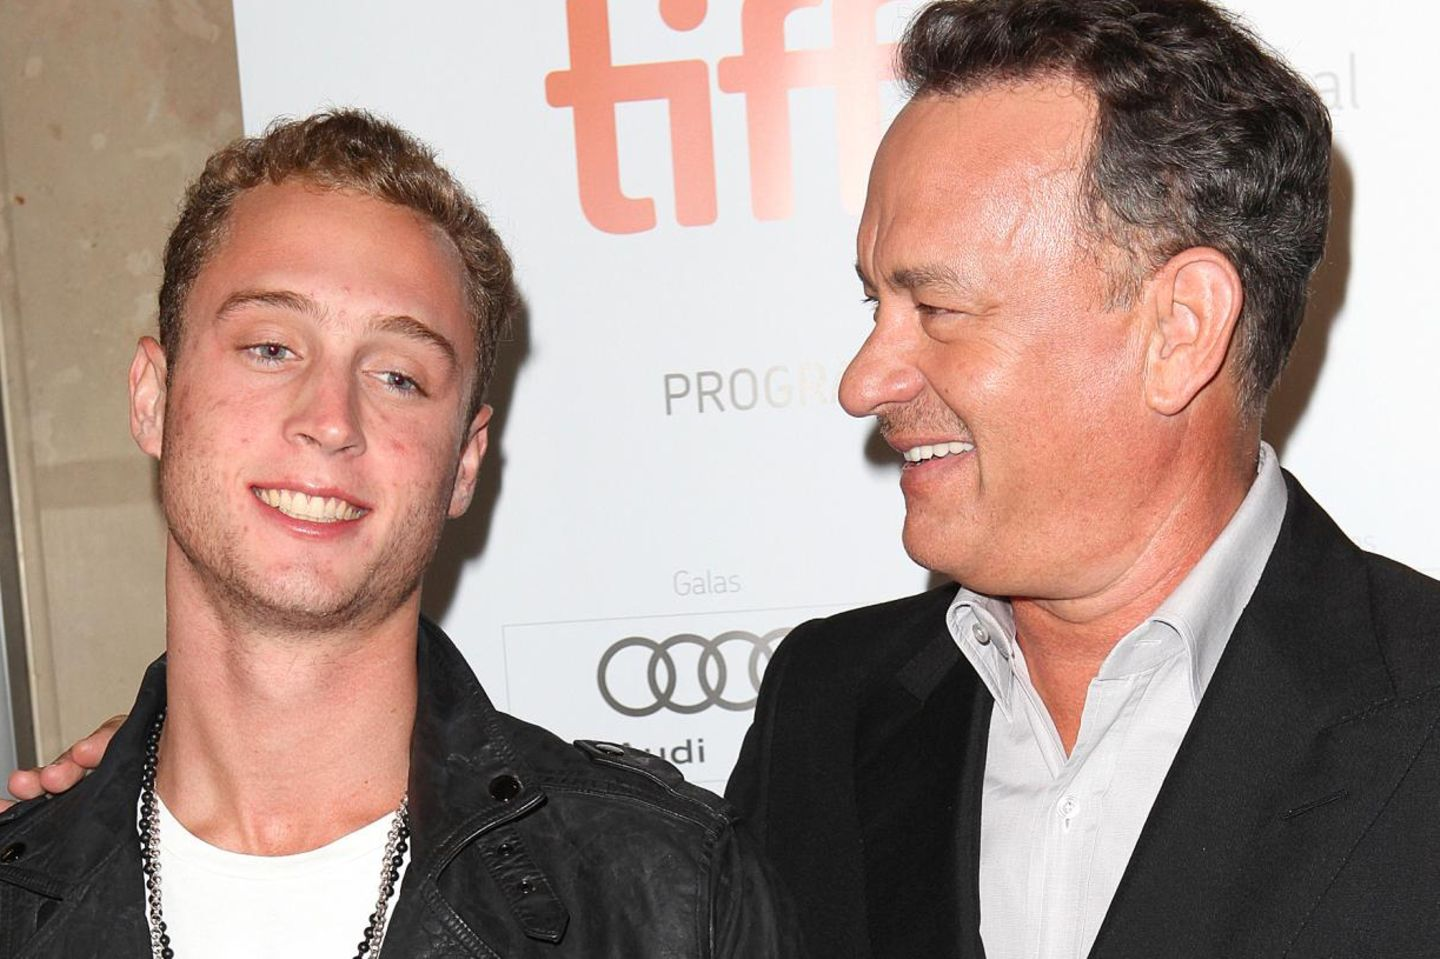 Chet Hanks, Tom Hanks